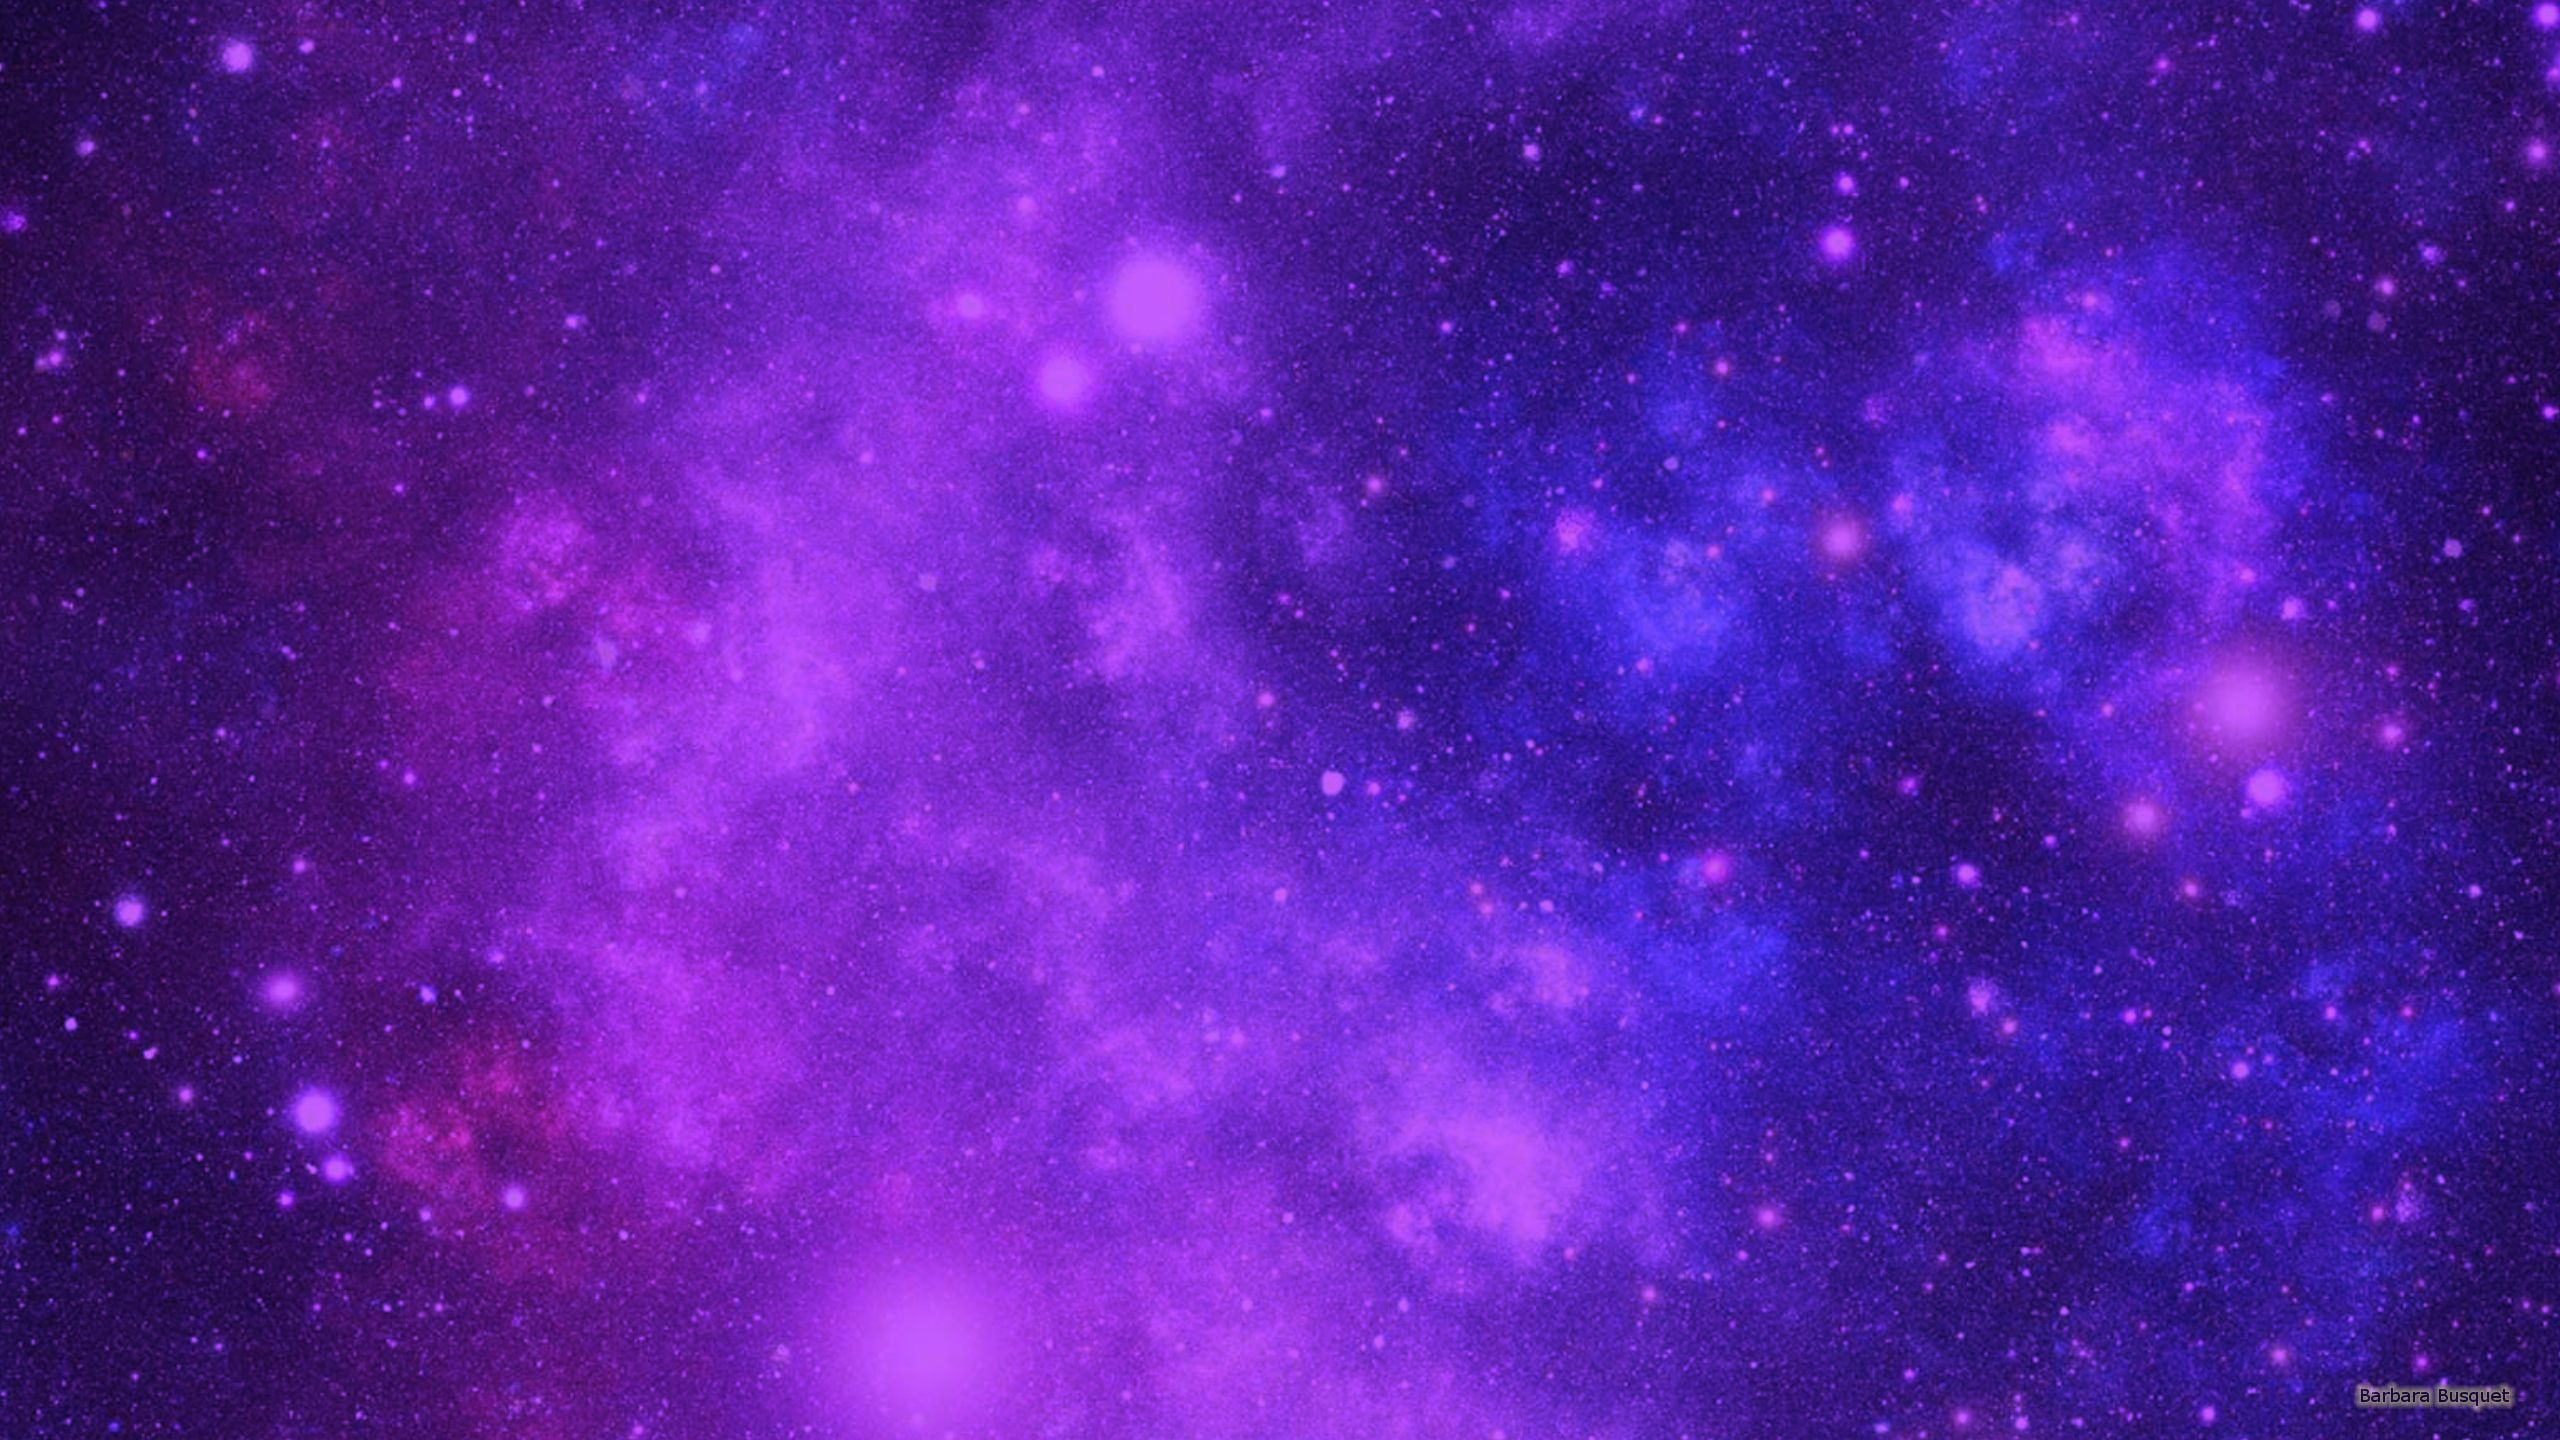 Blue and purple galaxy background